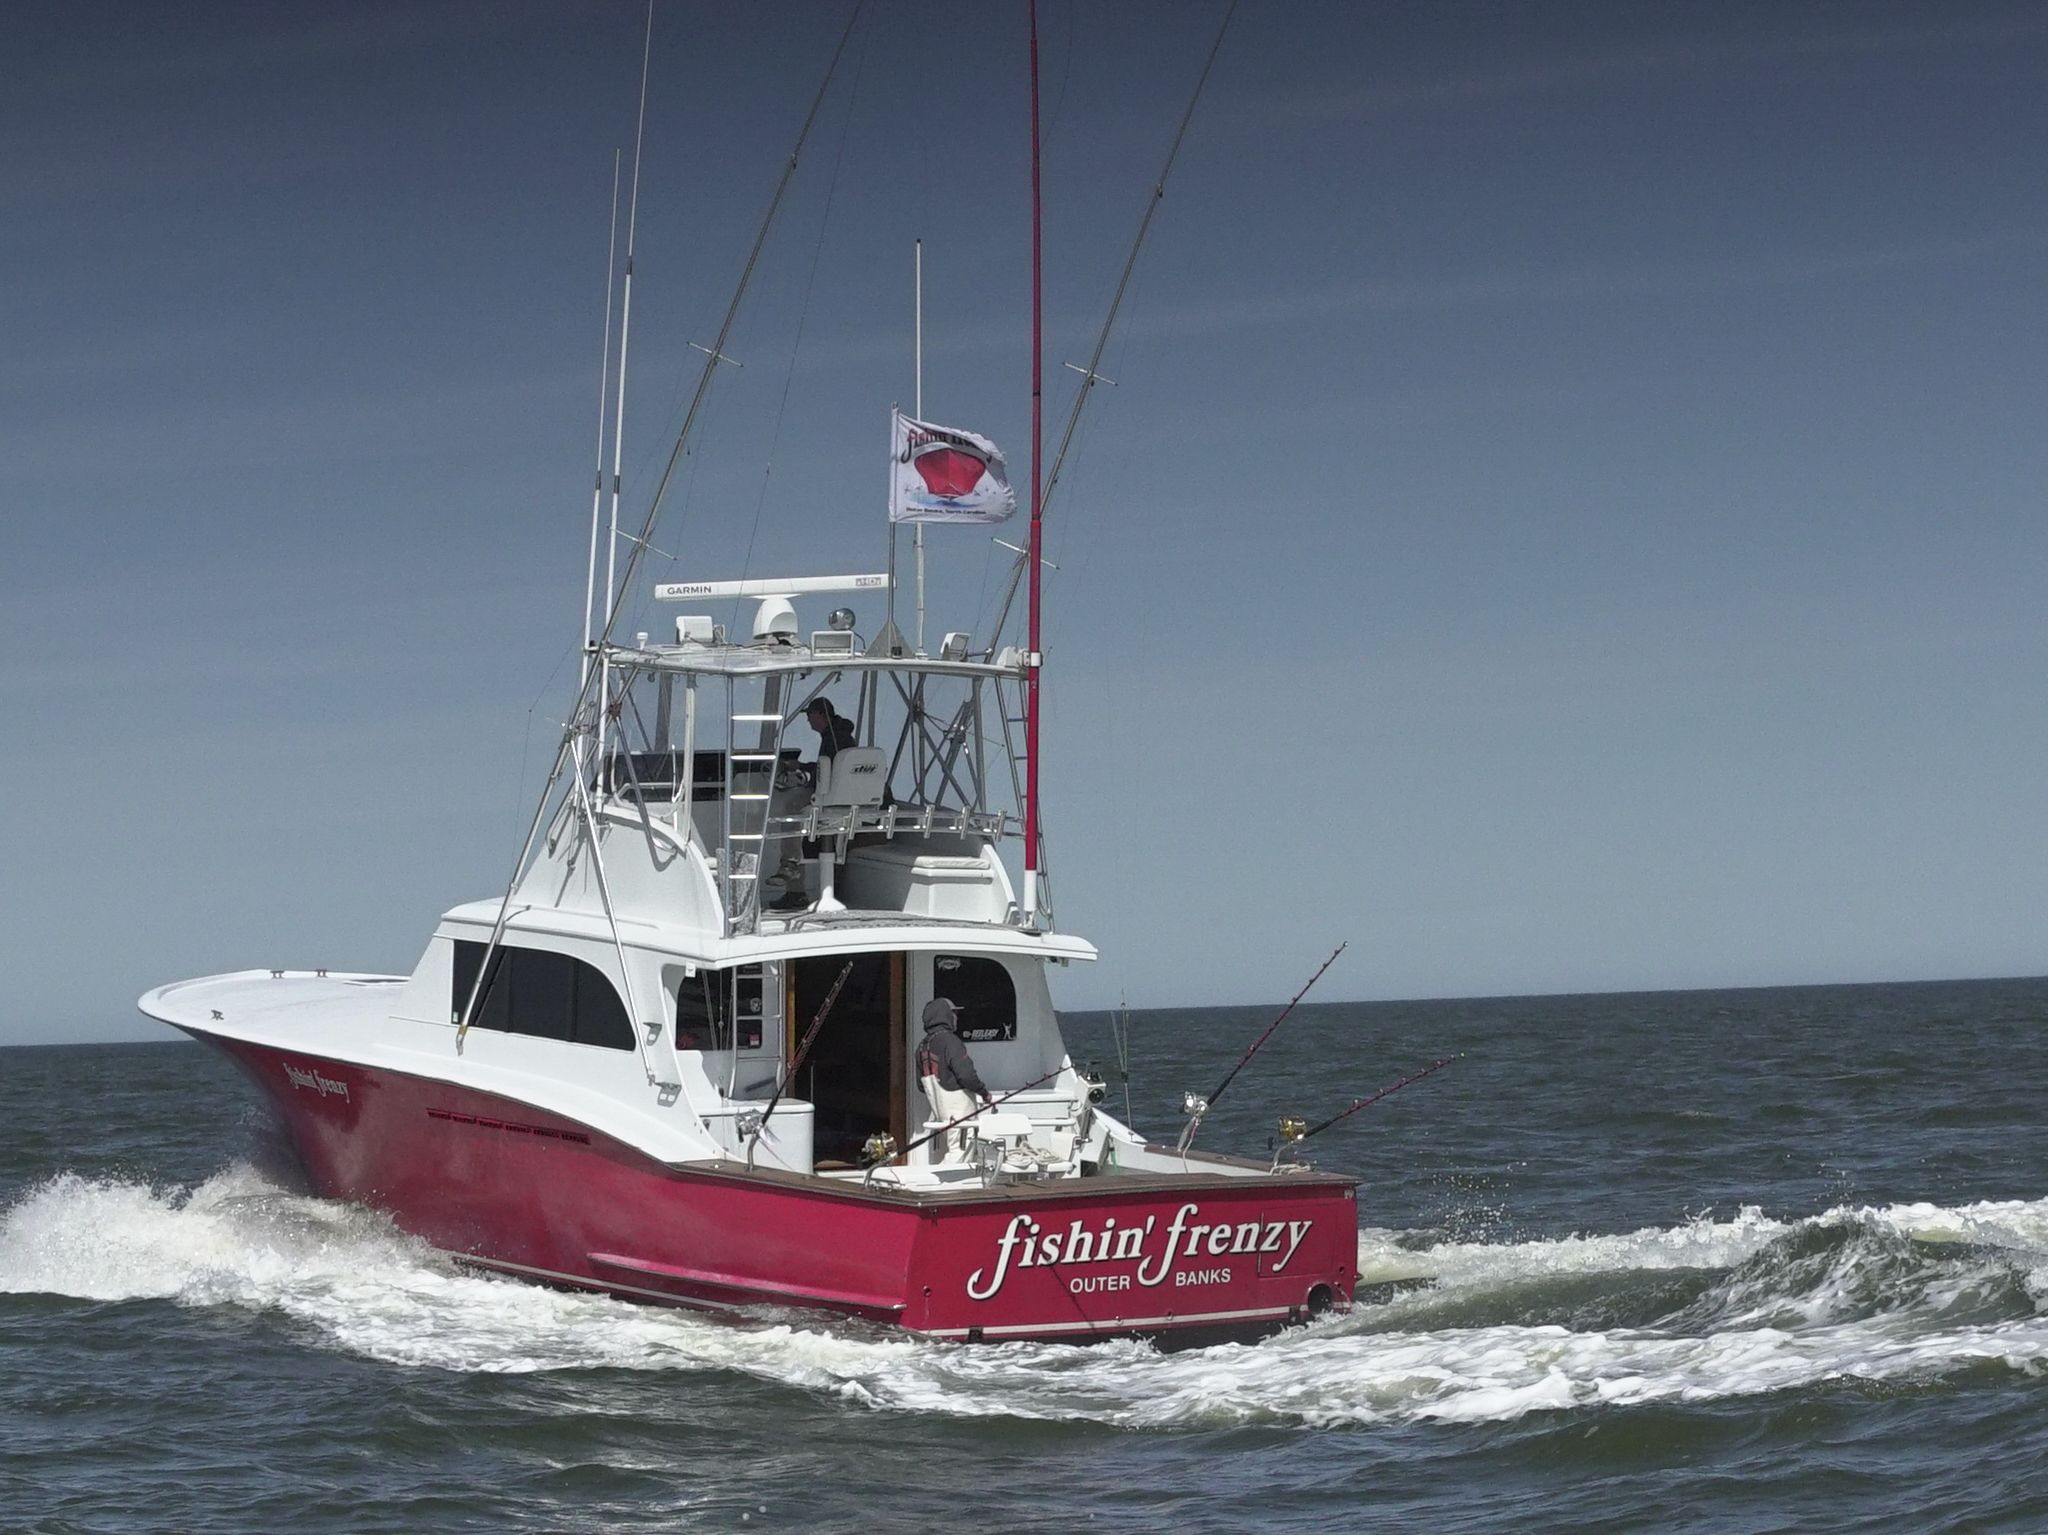 Fishin' Frenzy boat. This image is from Wicked Tuna: Outer Banks. [Photo of the day - November 2020]